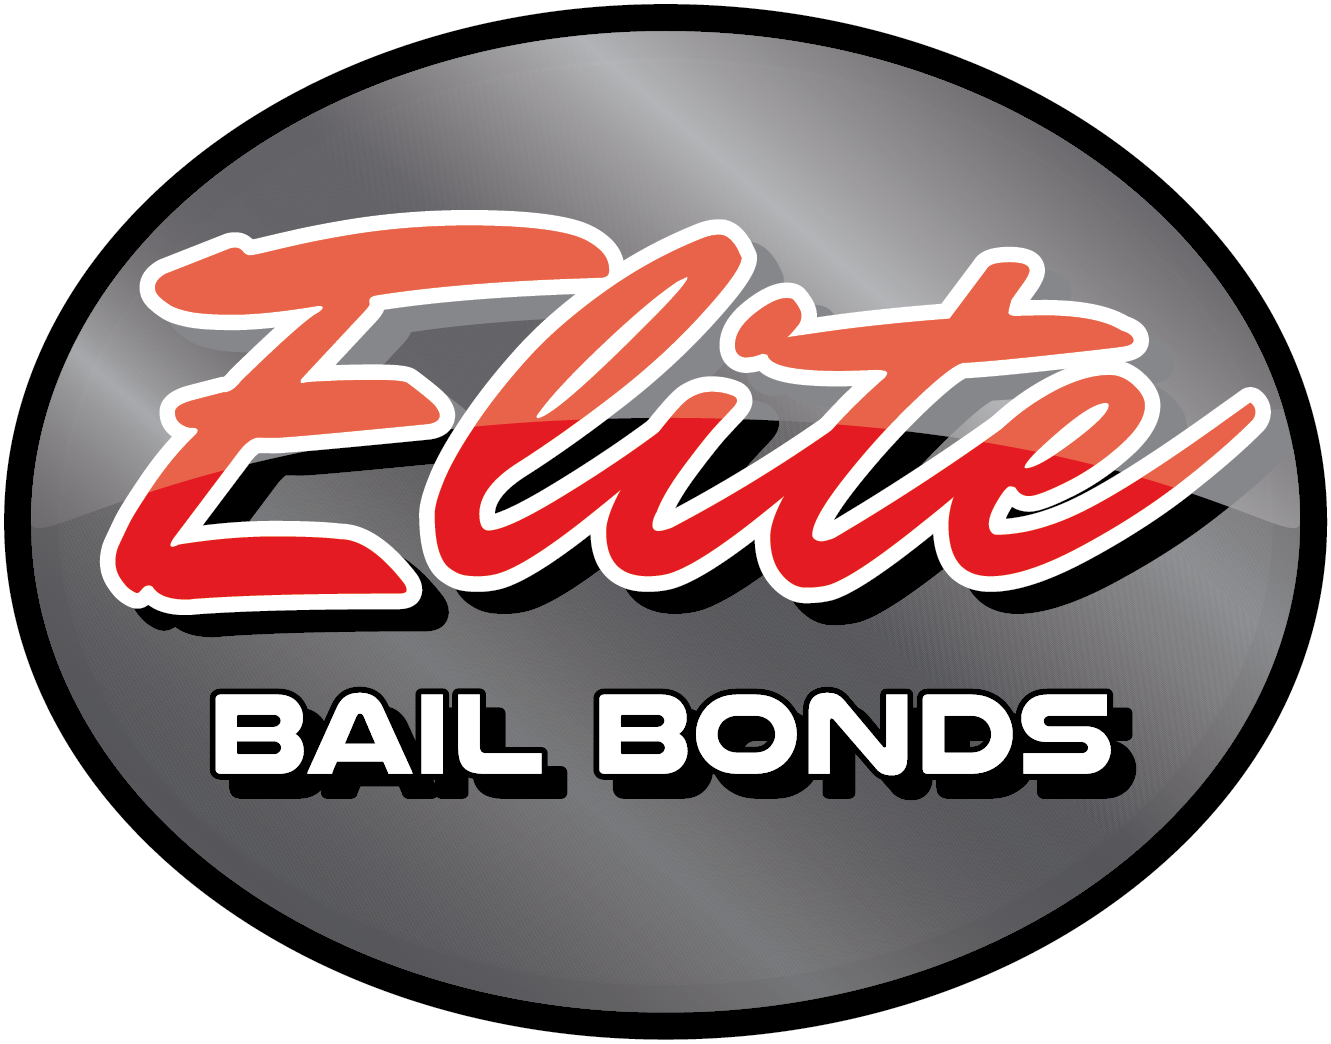 Wichita Bail Bonds